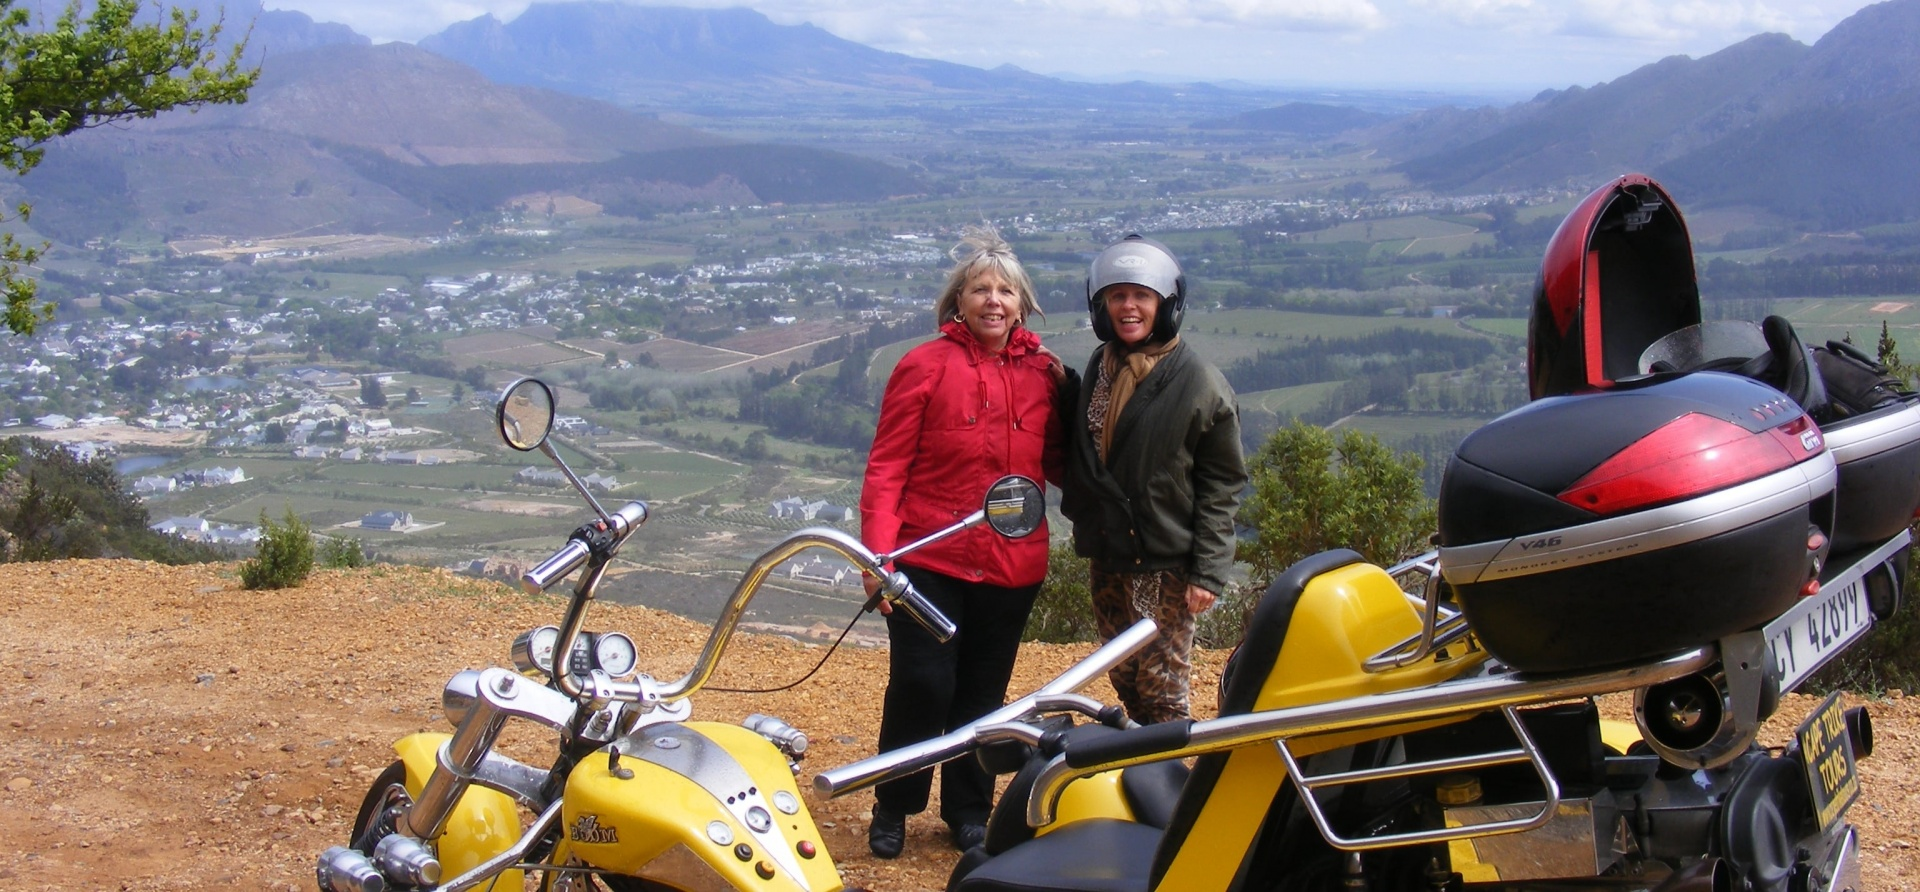 Winelands Trike Sightseeing Tour For Two-1